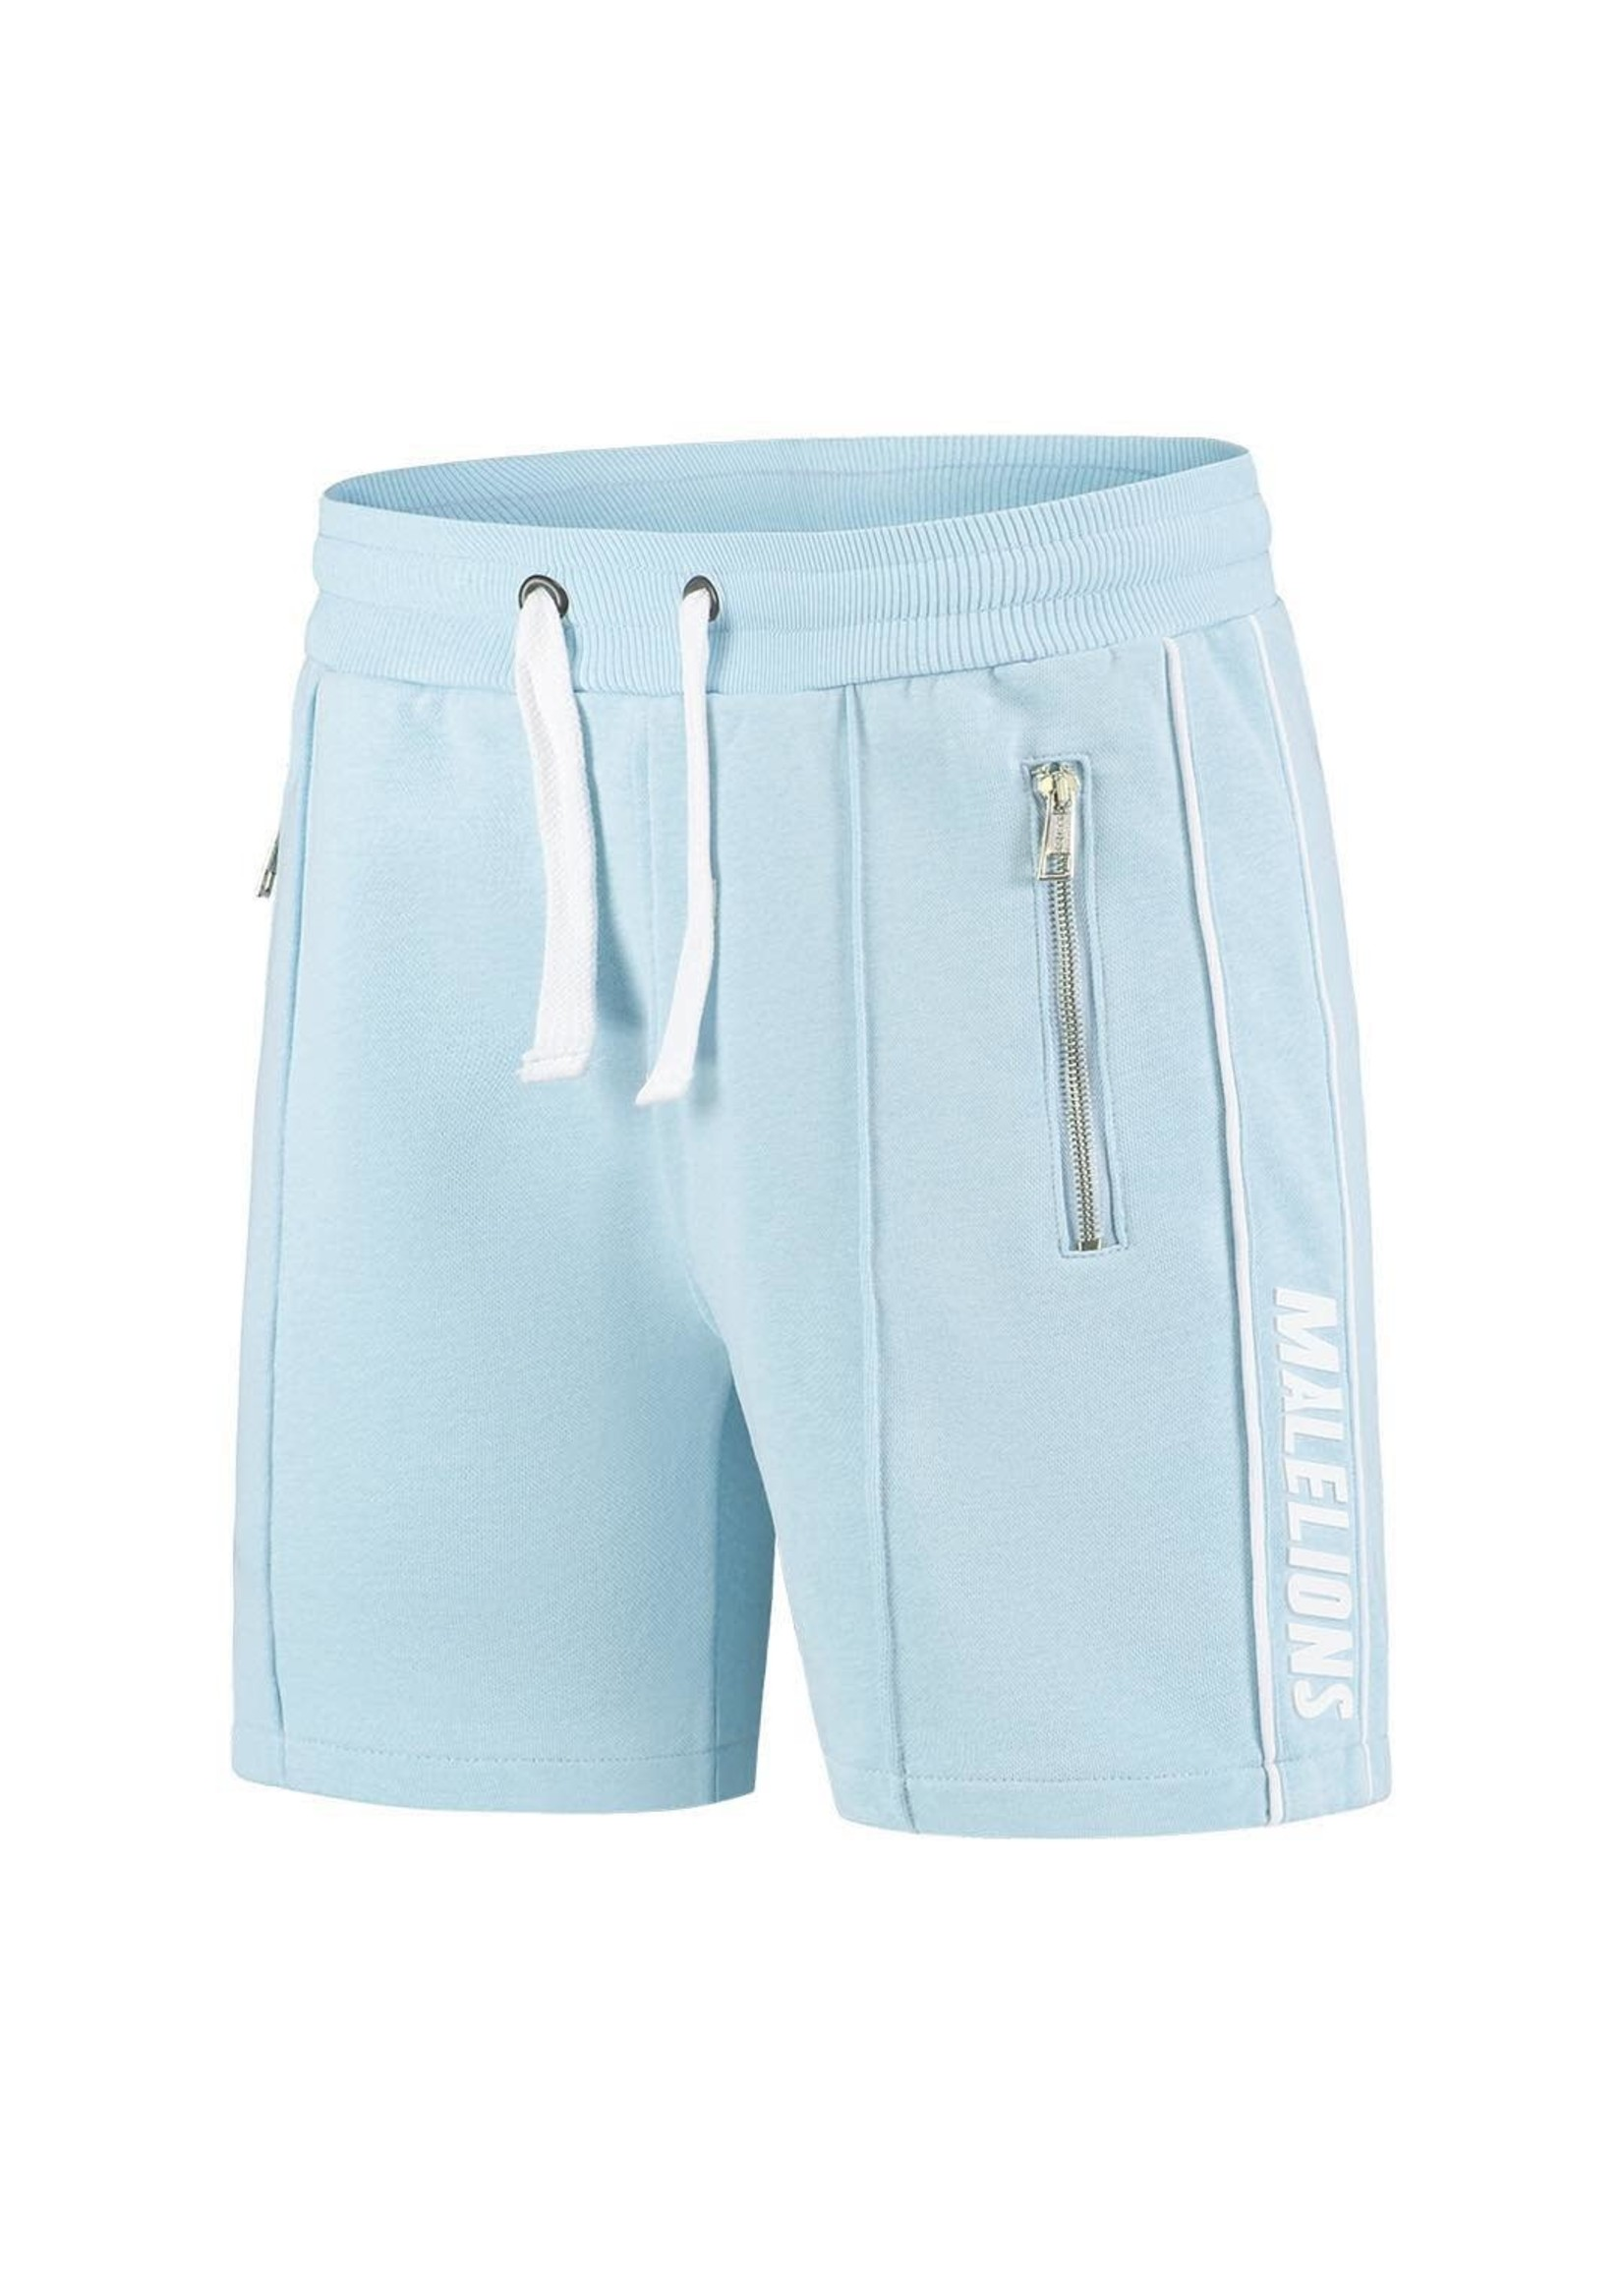 Malelions Malelions Junior Thies Short - Light Blue